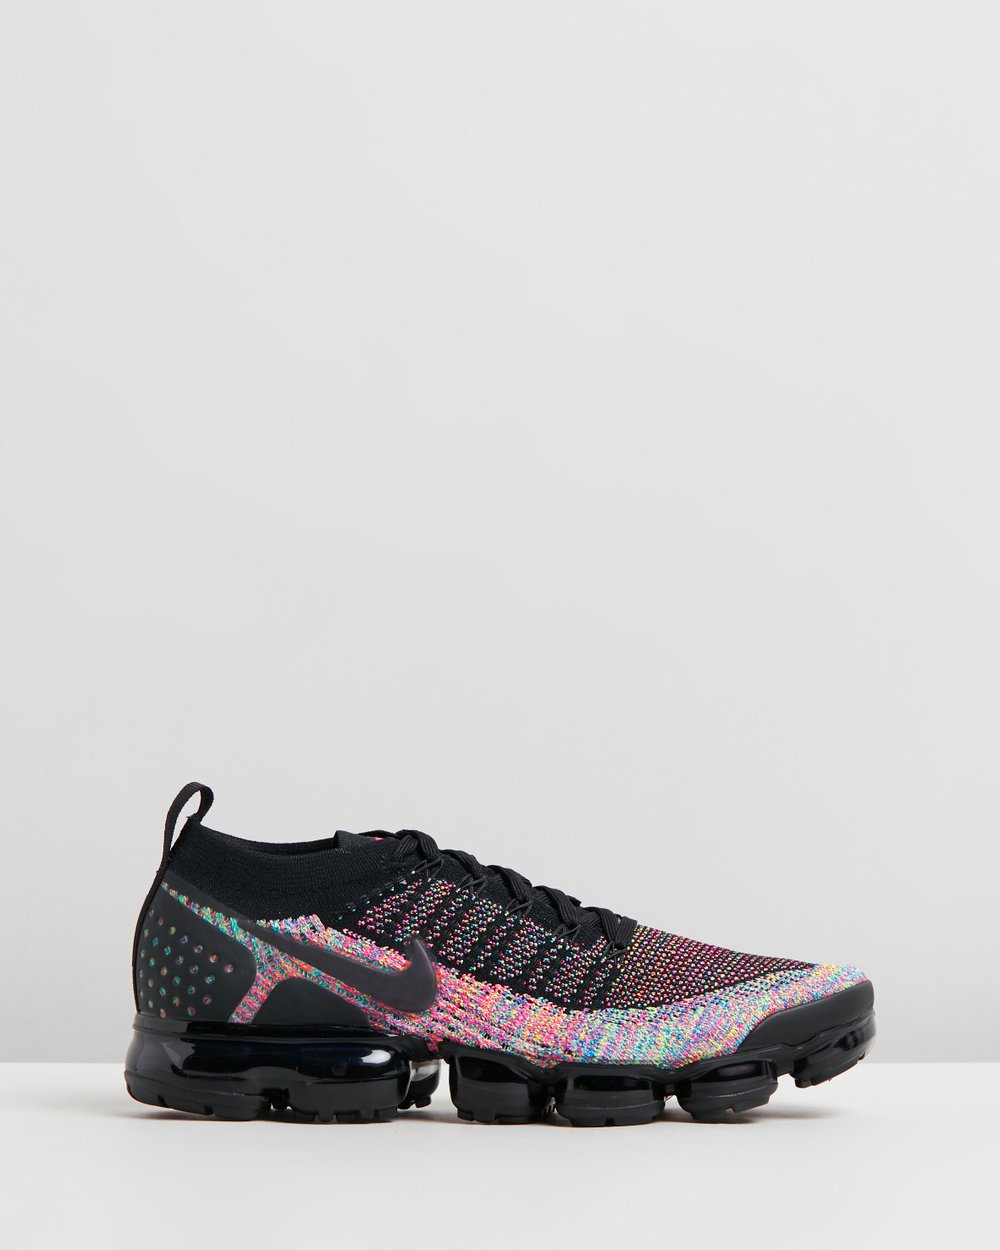 5f6af5a593b32 Air Vapormax Flyknit 2 - Men s by Nike Online